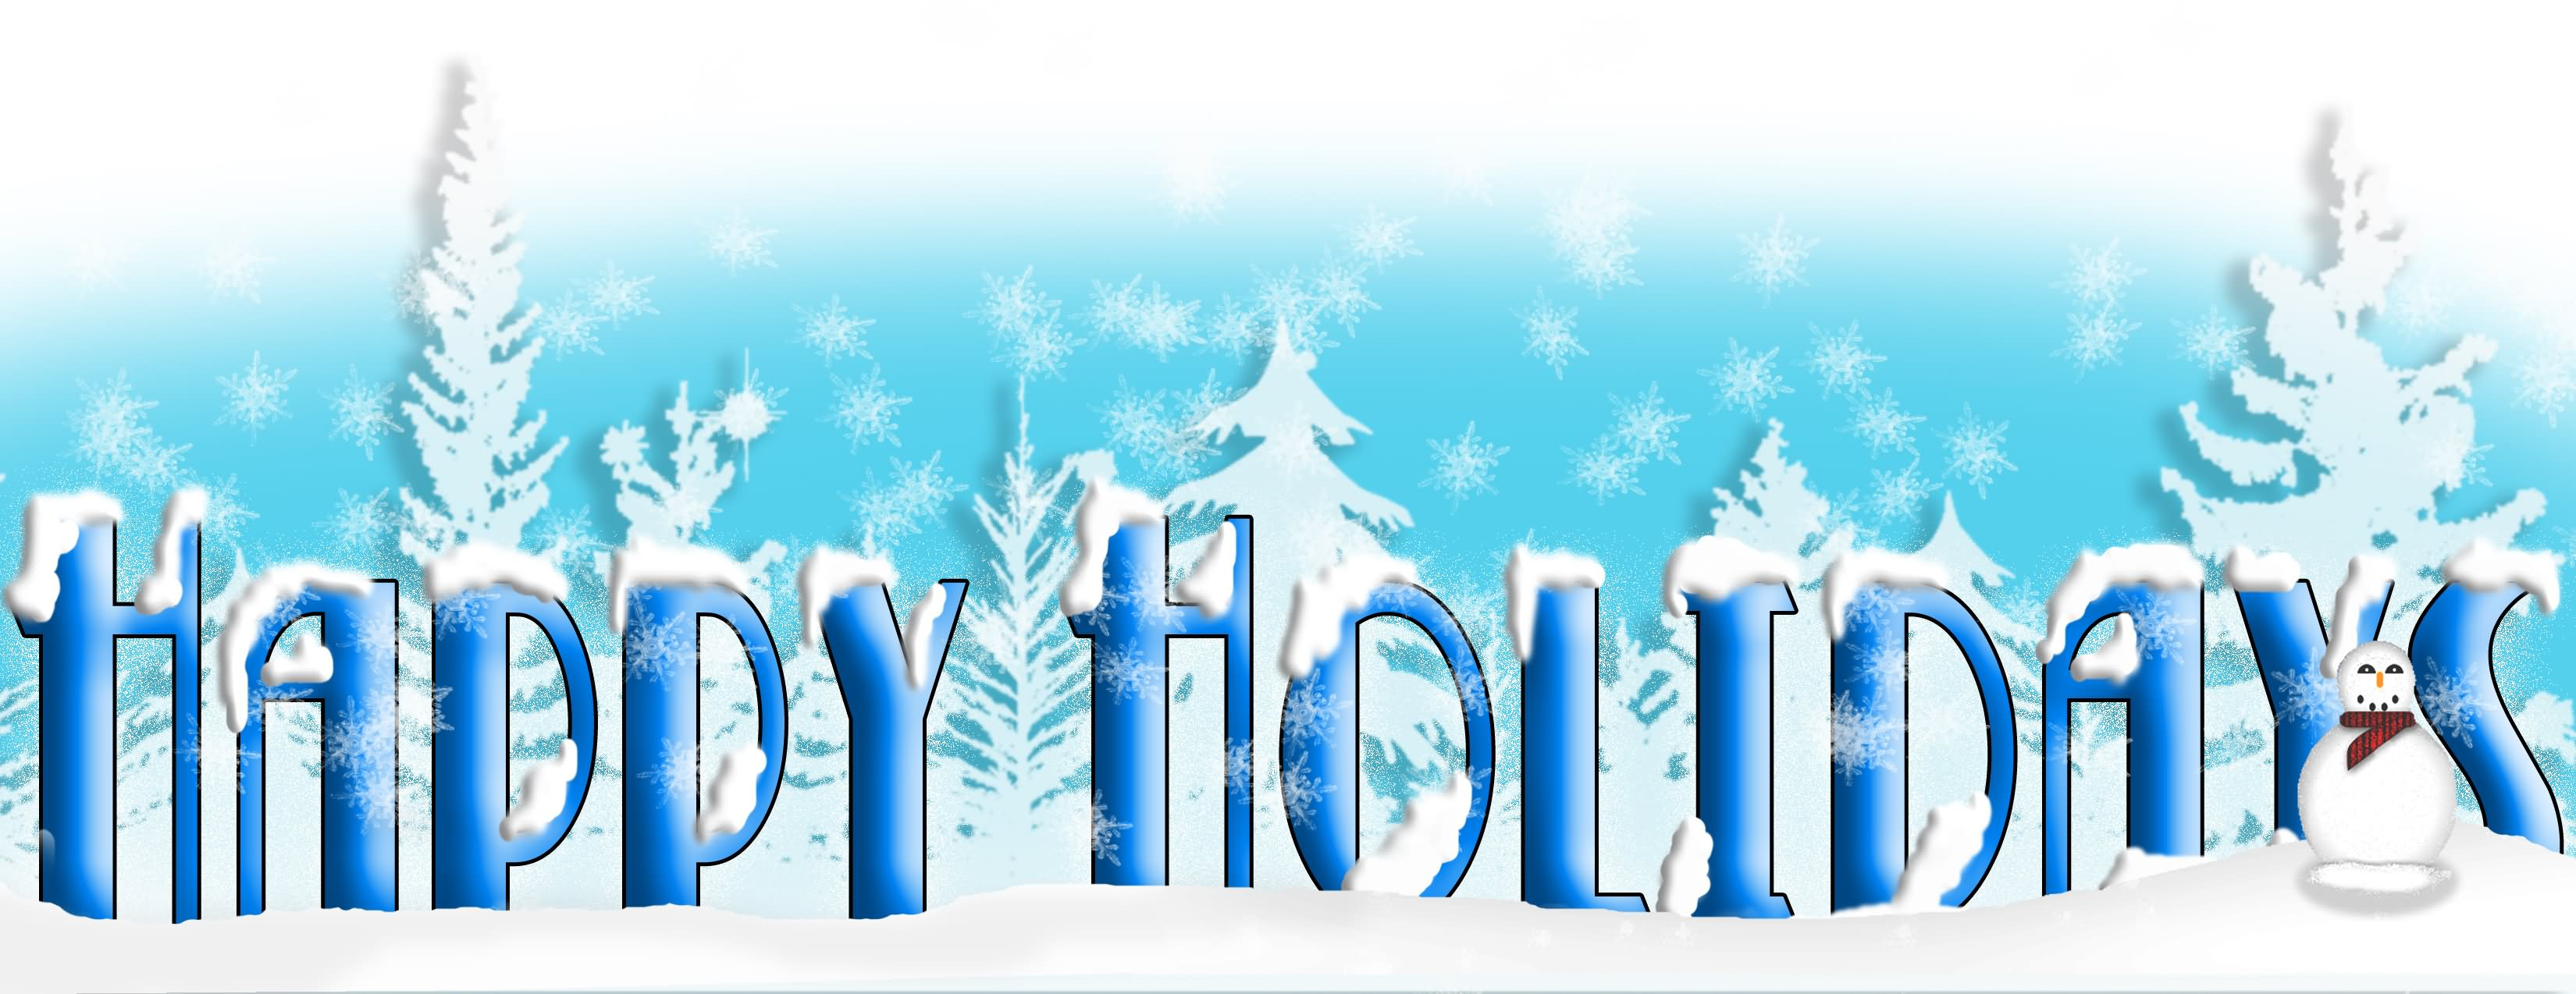 Holydays clipart blue Banner Graphic Happy  Blue